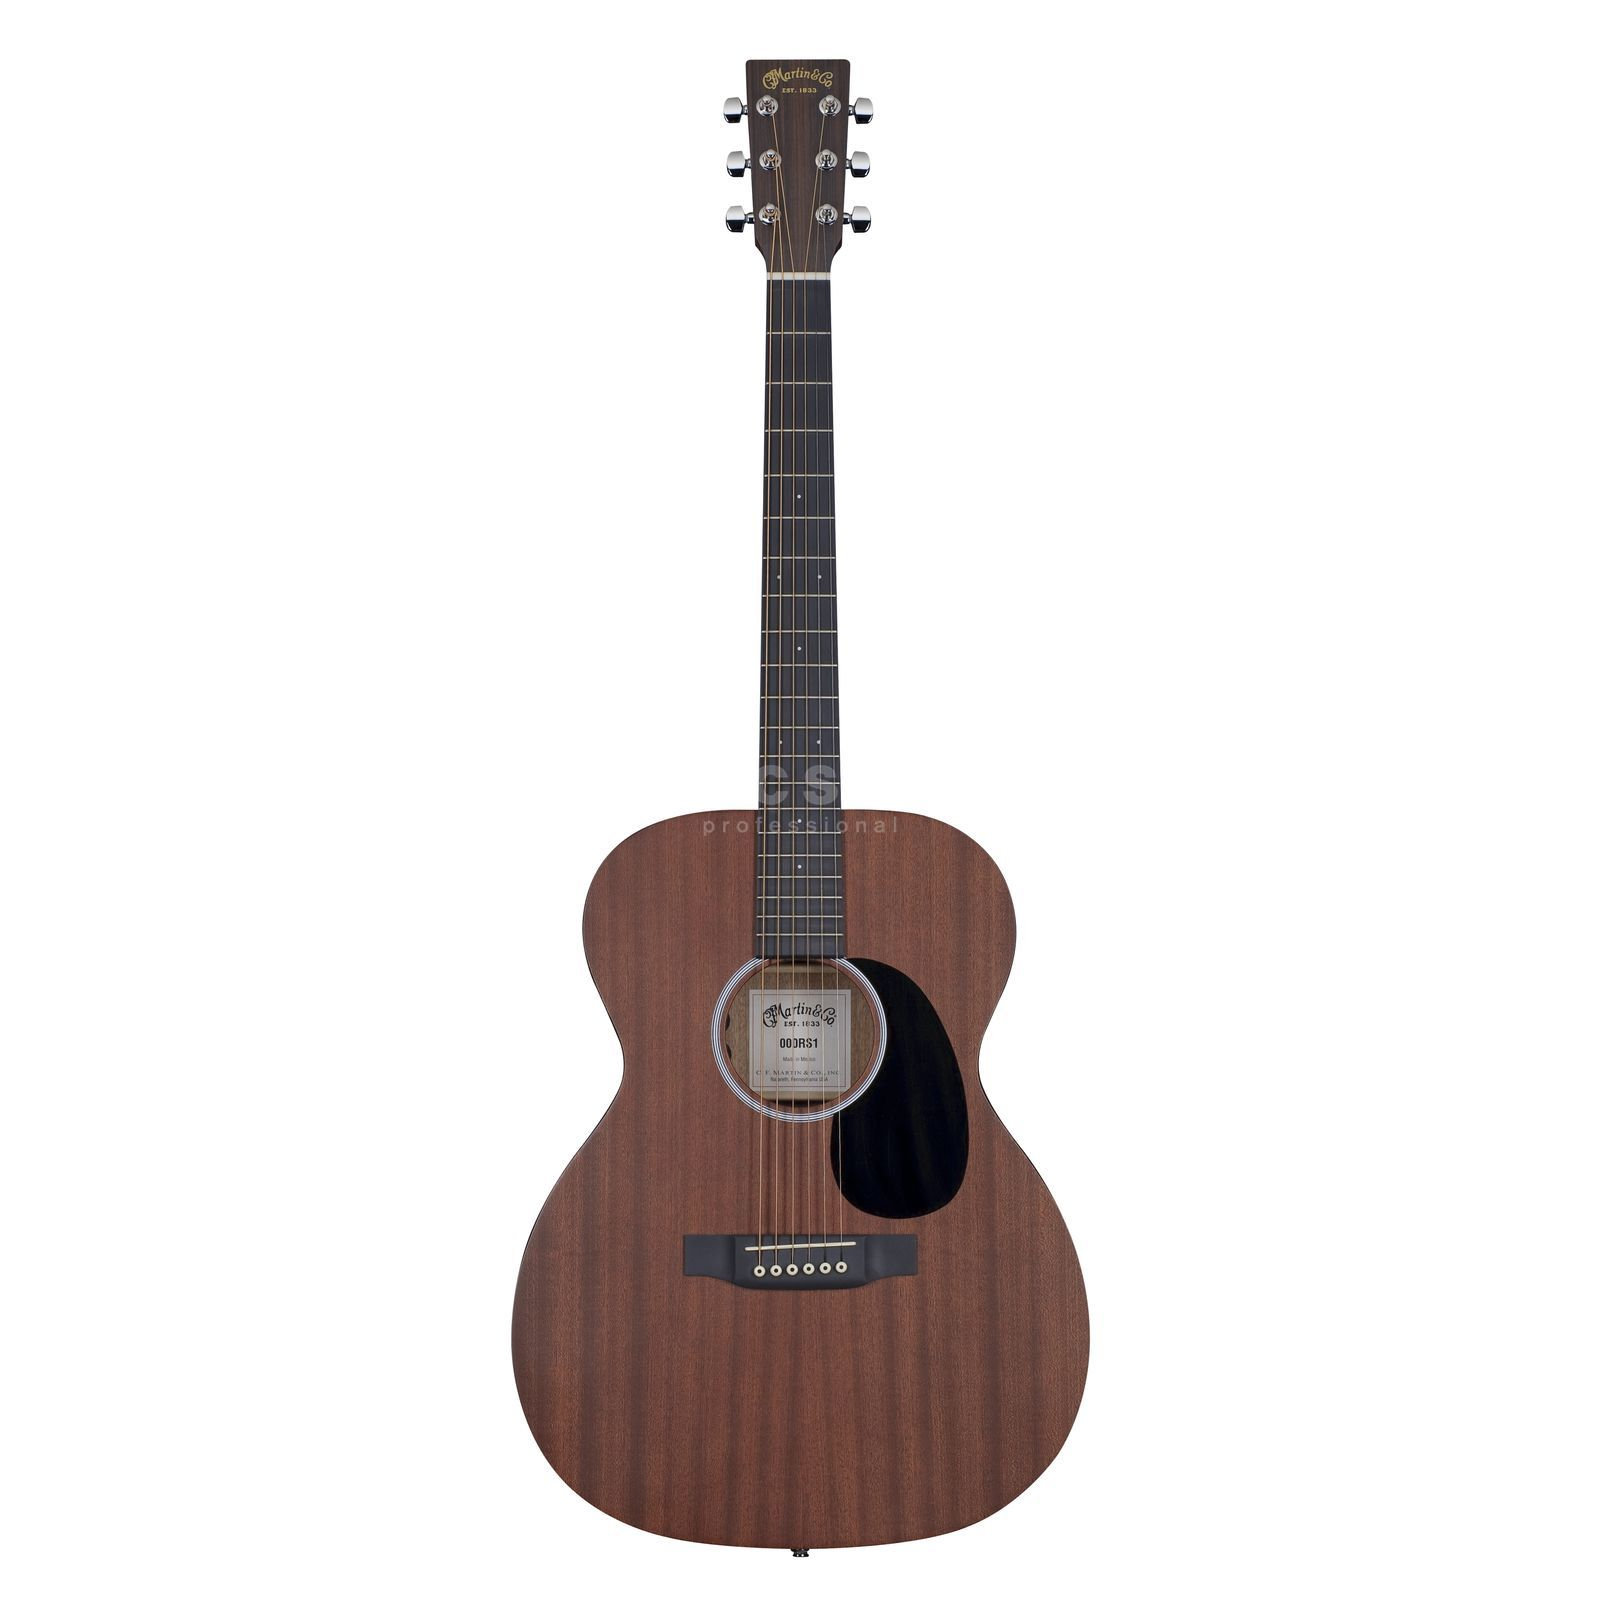 Martin Guitars 000RS1 Natural, incl. Case Produktbild